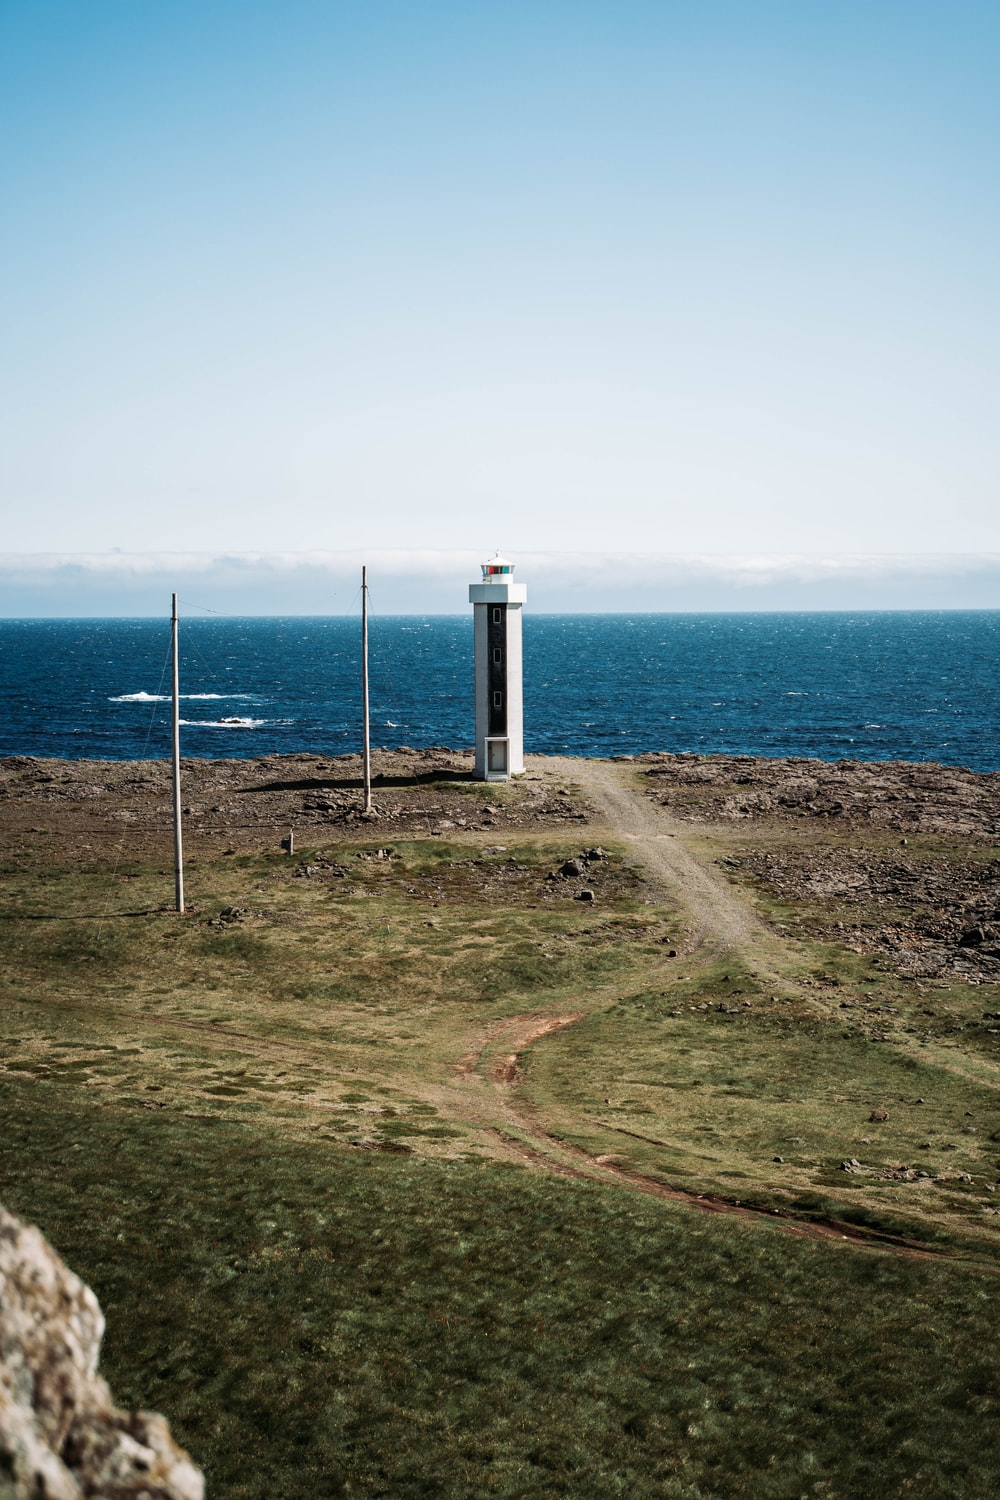 white and black lighthouse on green field near blue sea under blue and white sky during daytime